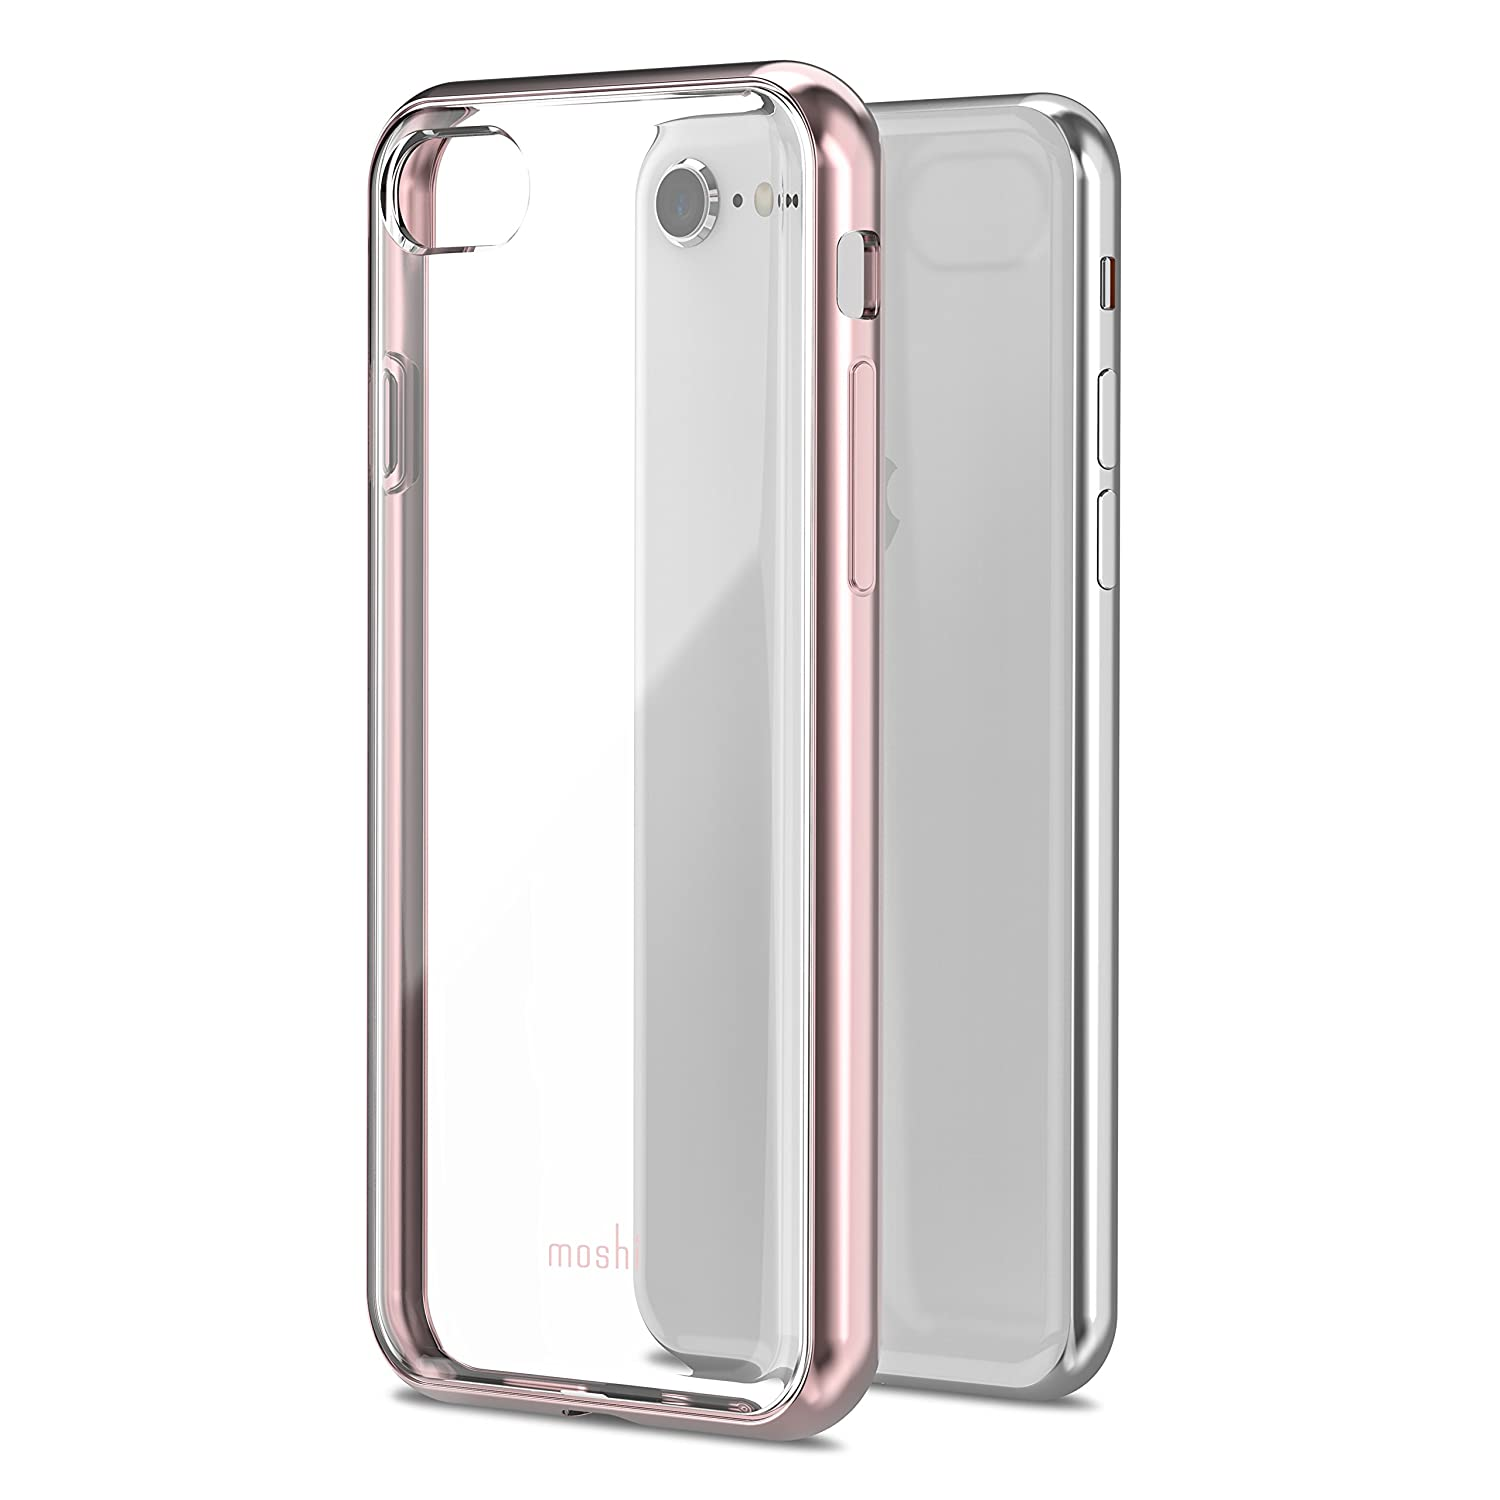 851a3a2abd Amazon.com: Moshi Vitros for iPhone 8/7 - Crystal Clear: Cell Phones &  Accessories